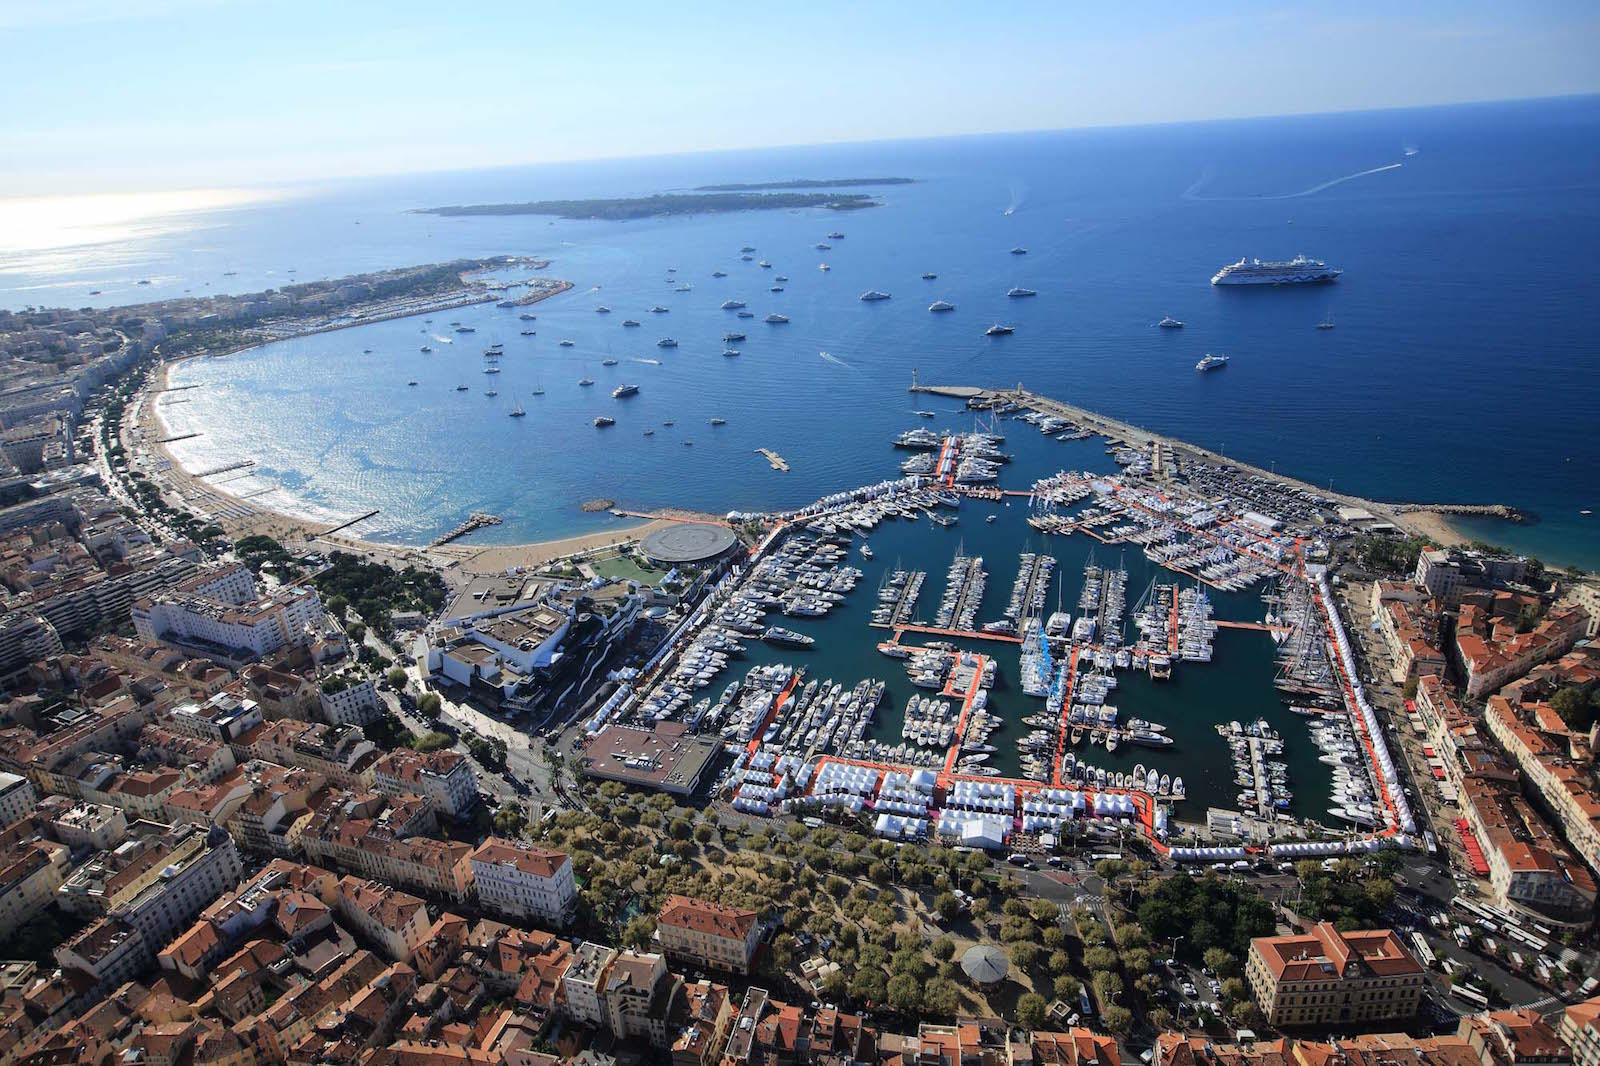 Cannes-Yachting-Festival-from-the-air.jpg